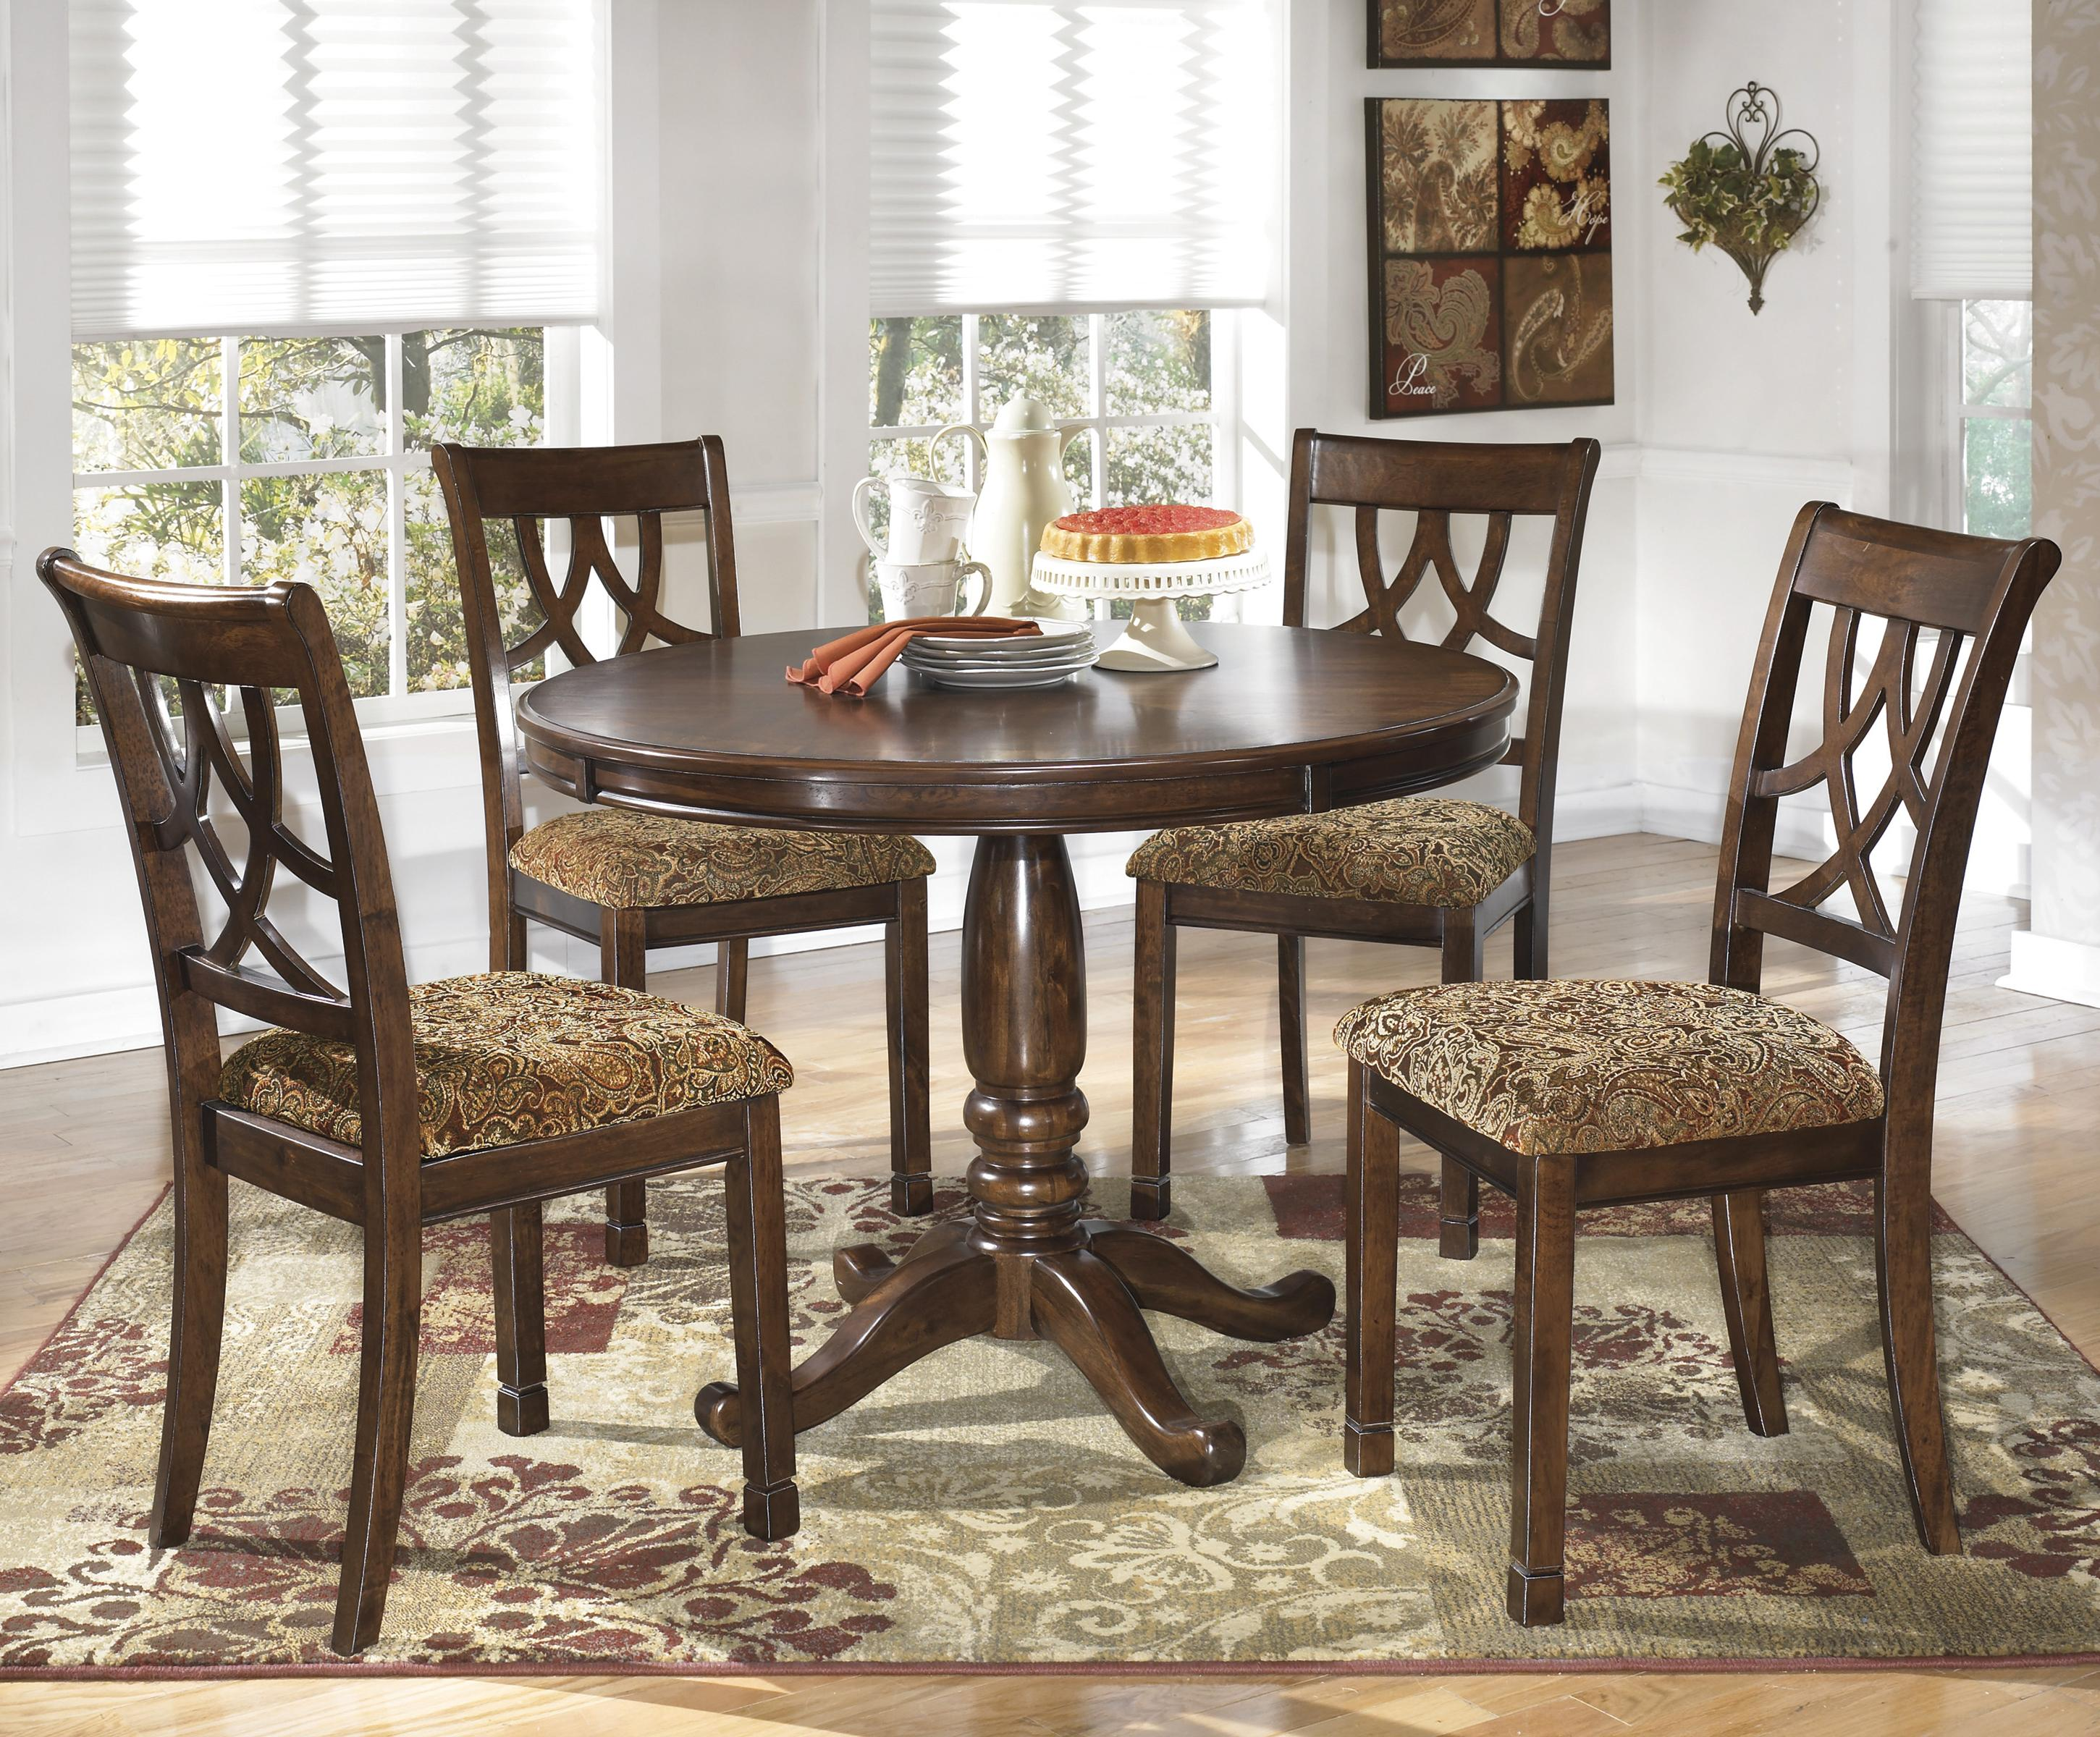 5 piece cherry finish round dining table set by signature design by ashley wolf and gardiner. Black Bedroom Furniture Sets. Home Design Ideas